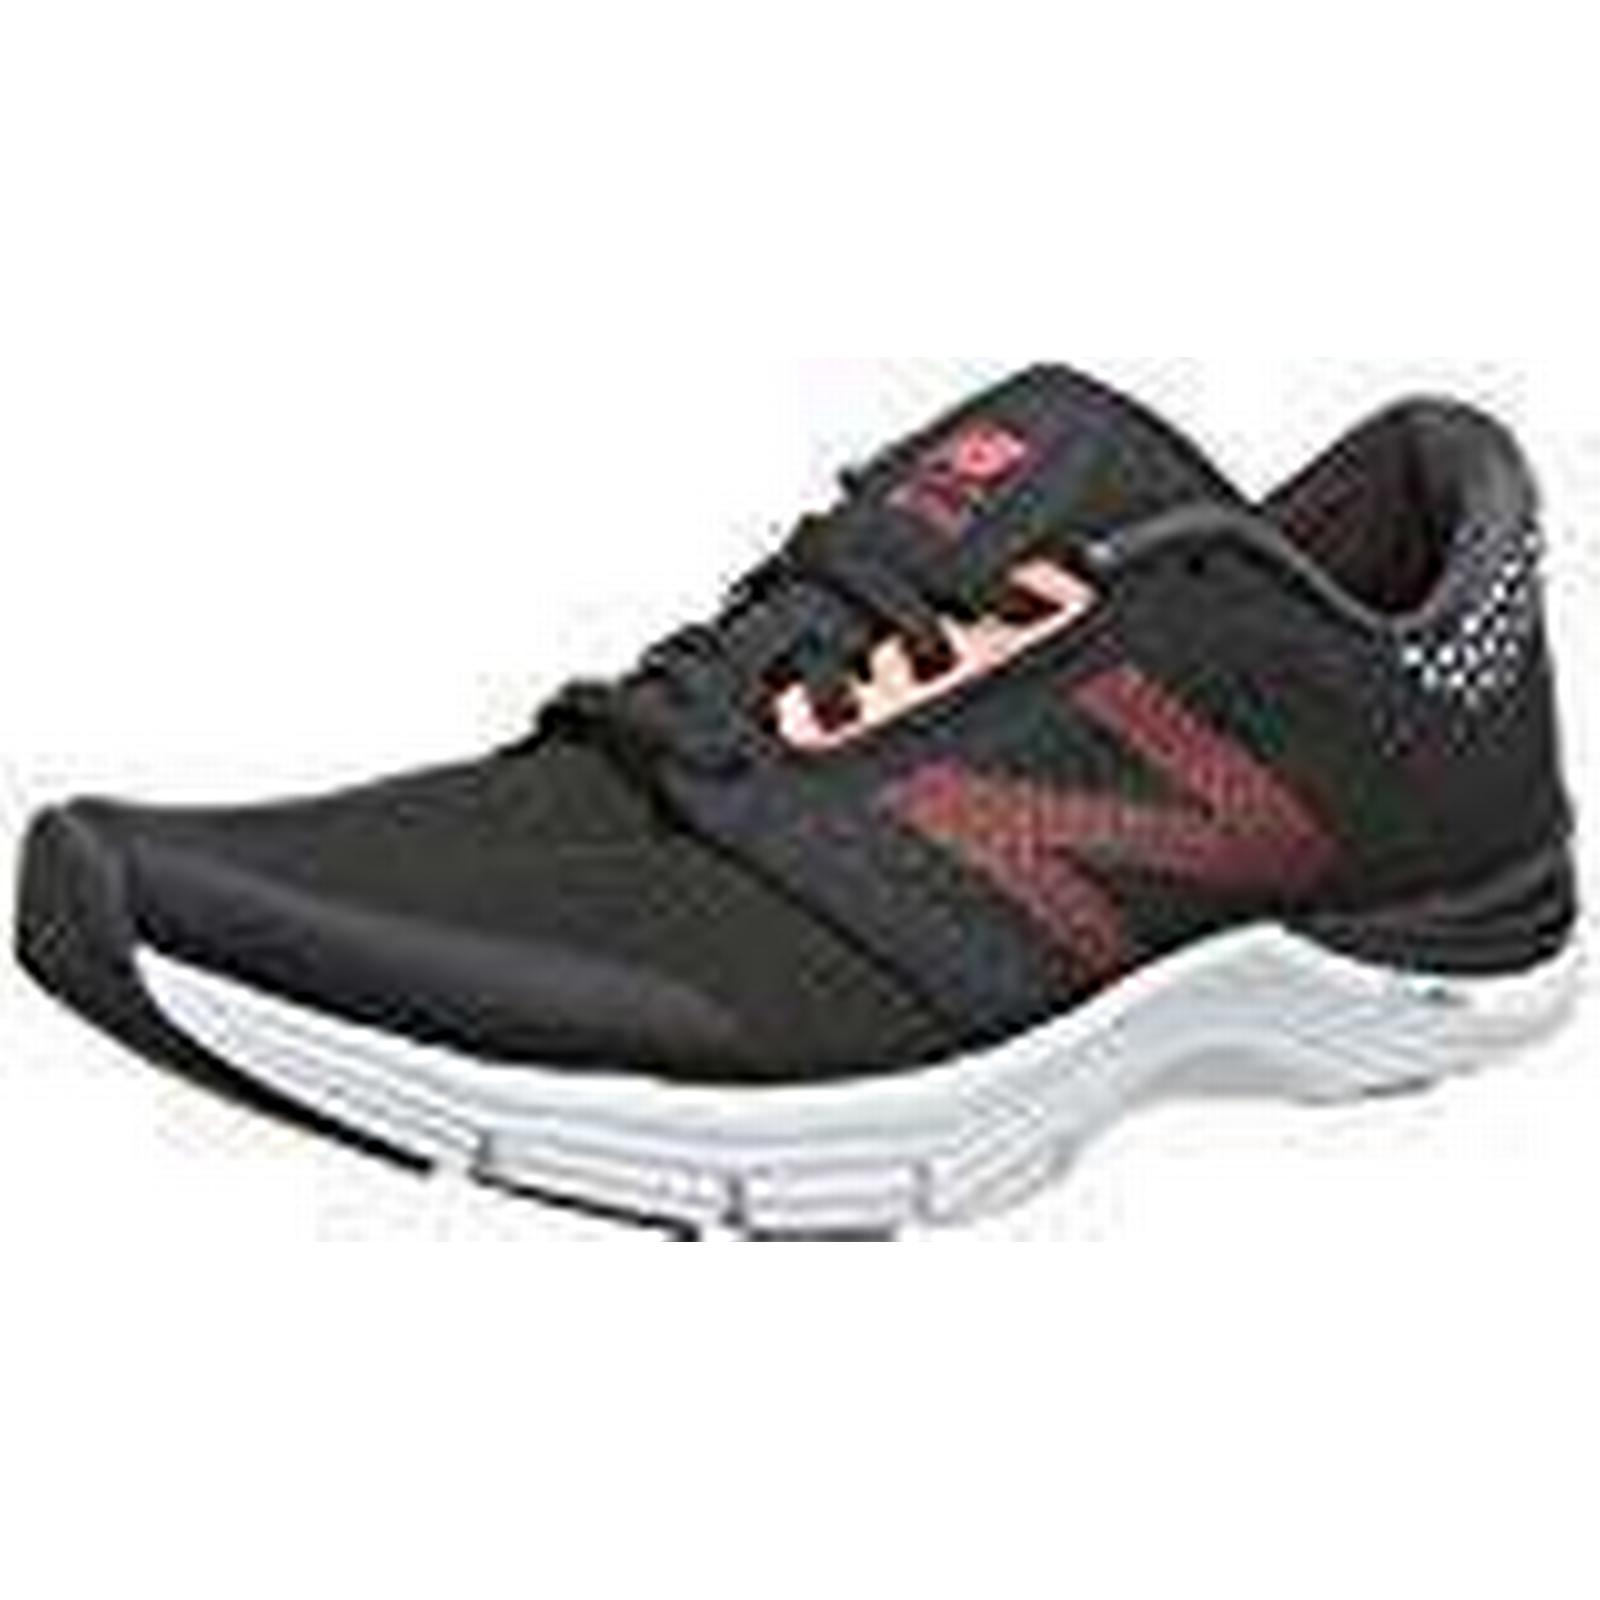 New Balance Women's 715v3 Fitness 36.5 Shoes, (Black/Pink), 4 UK 36.5 Fitness EU 64bb58